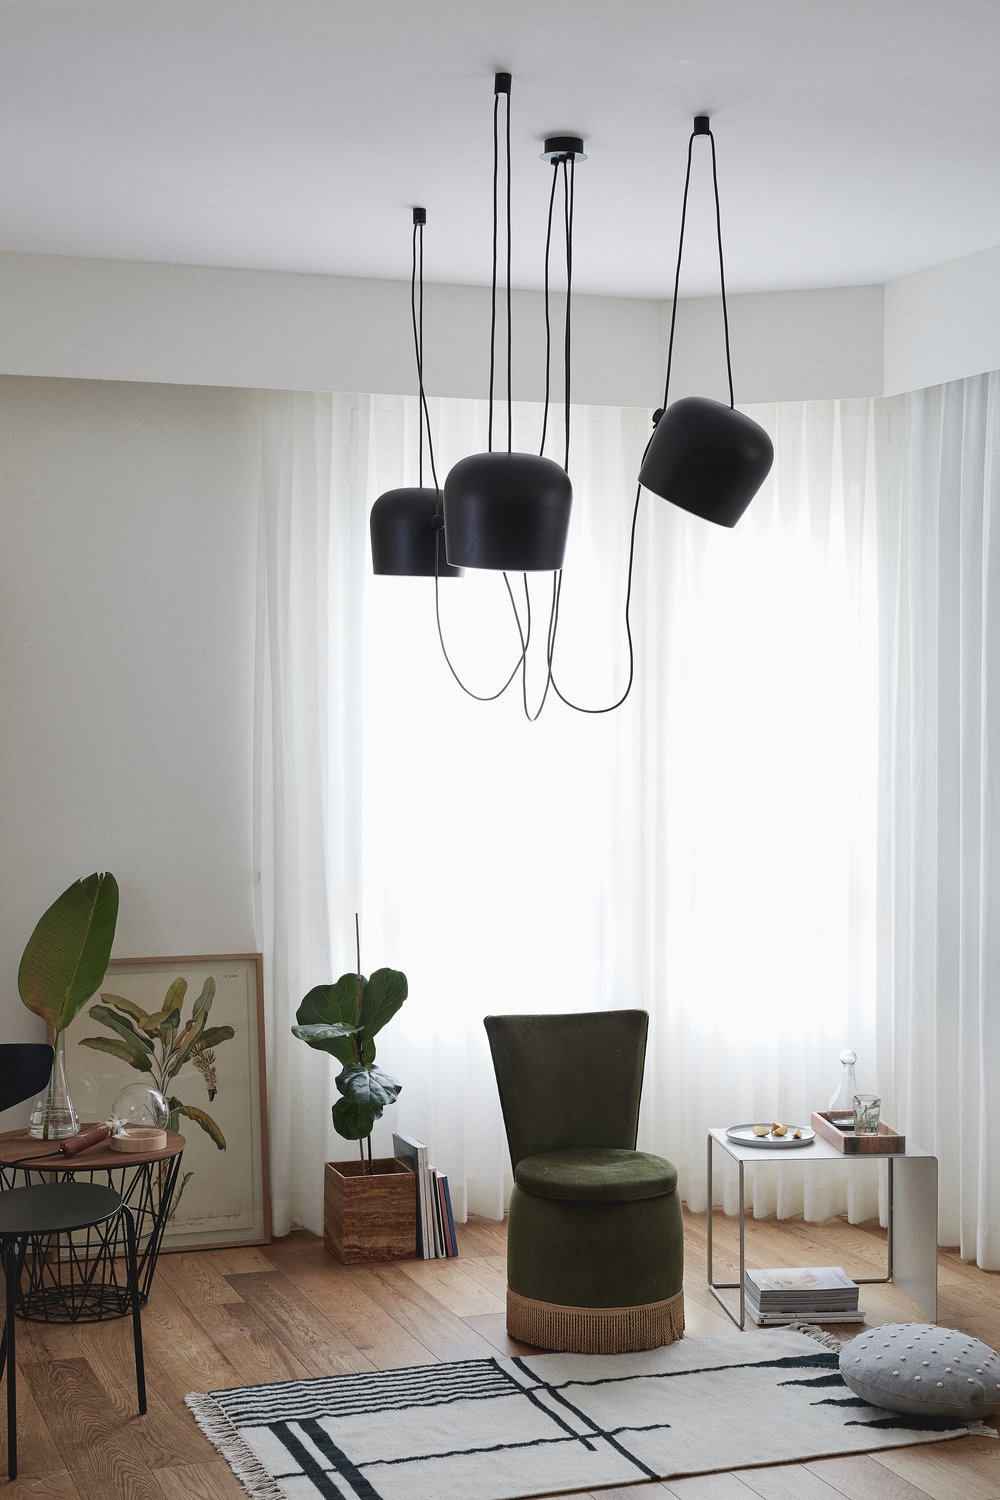 Flos lighting. green velvet chair. Ferm Living furniture